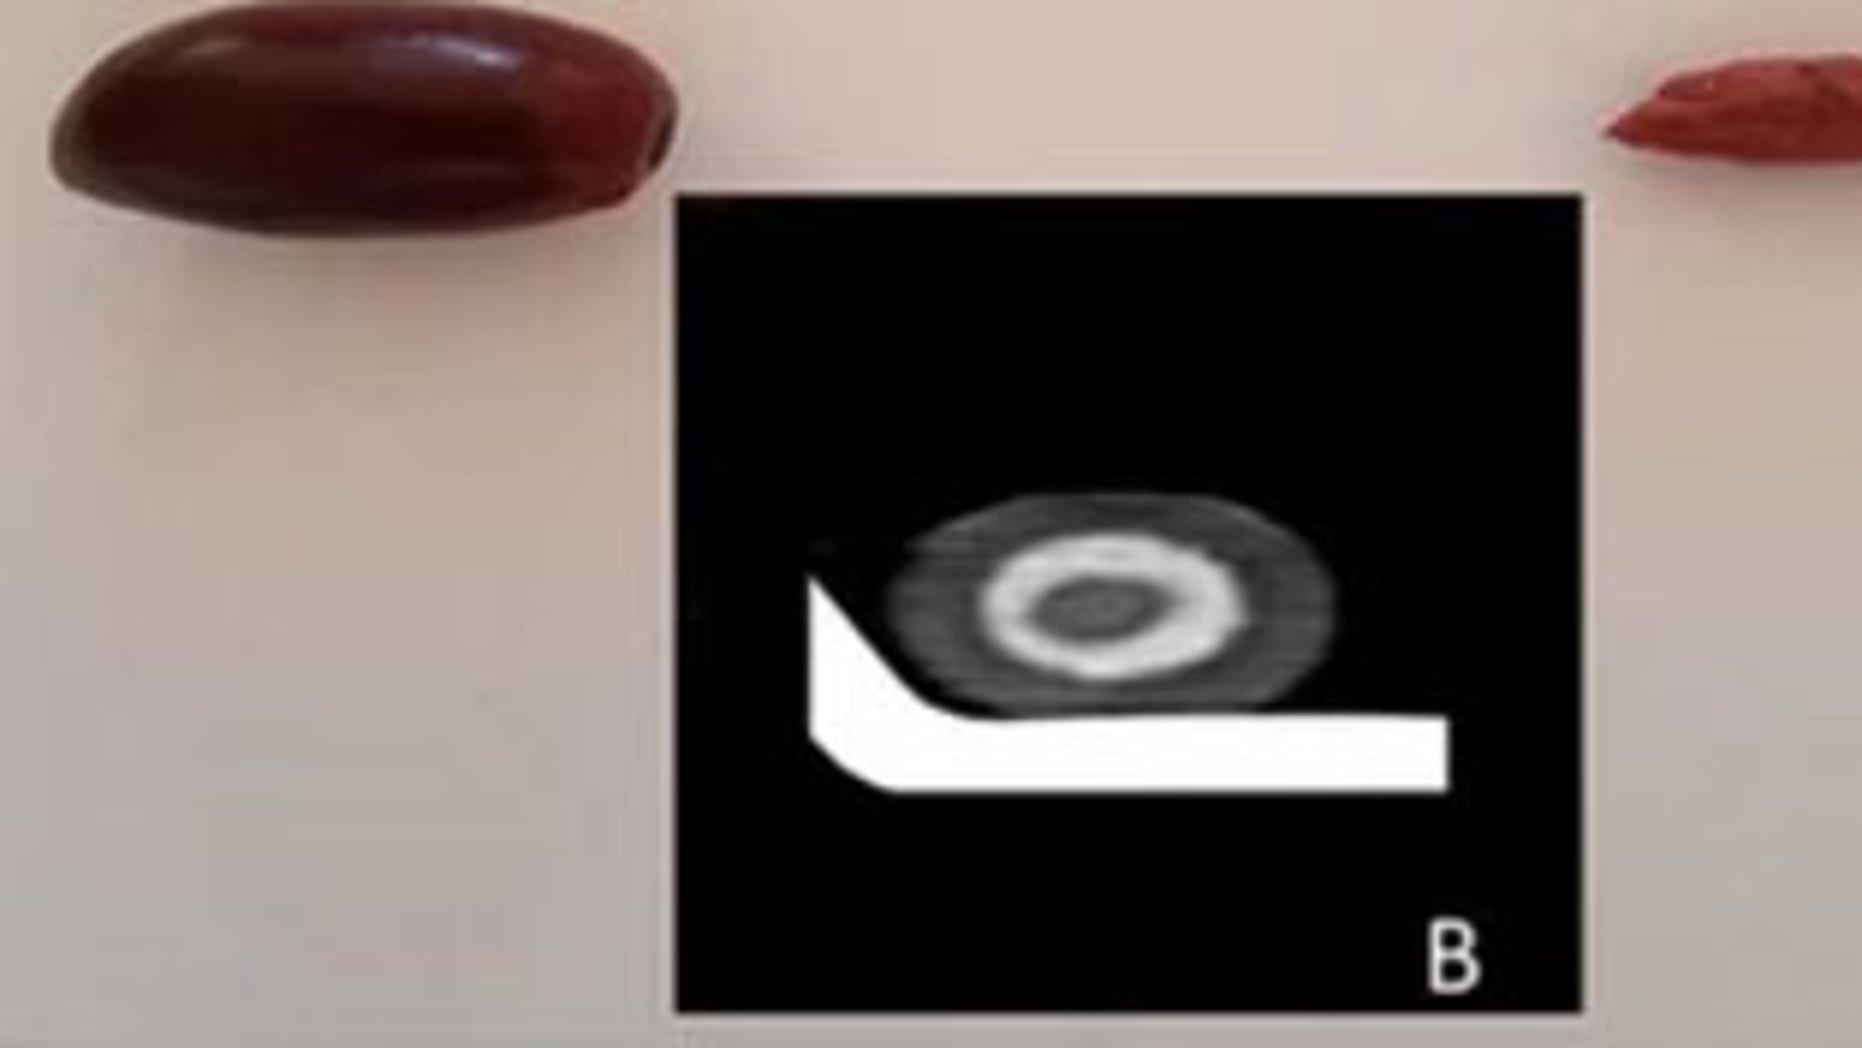 An olive and its pit; the inset image is a scan of a single black olive, which is similar in appearance to the olive in the man's gut.